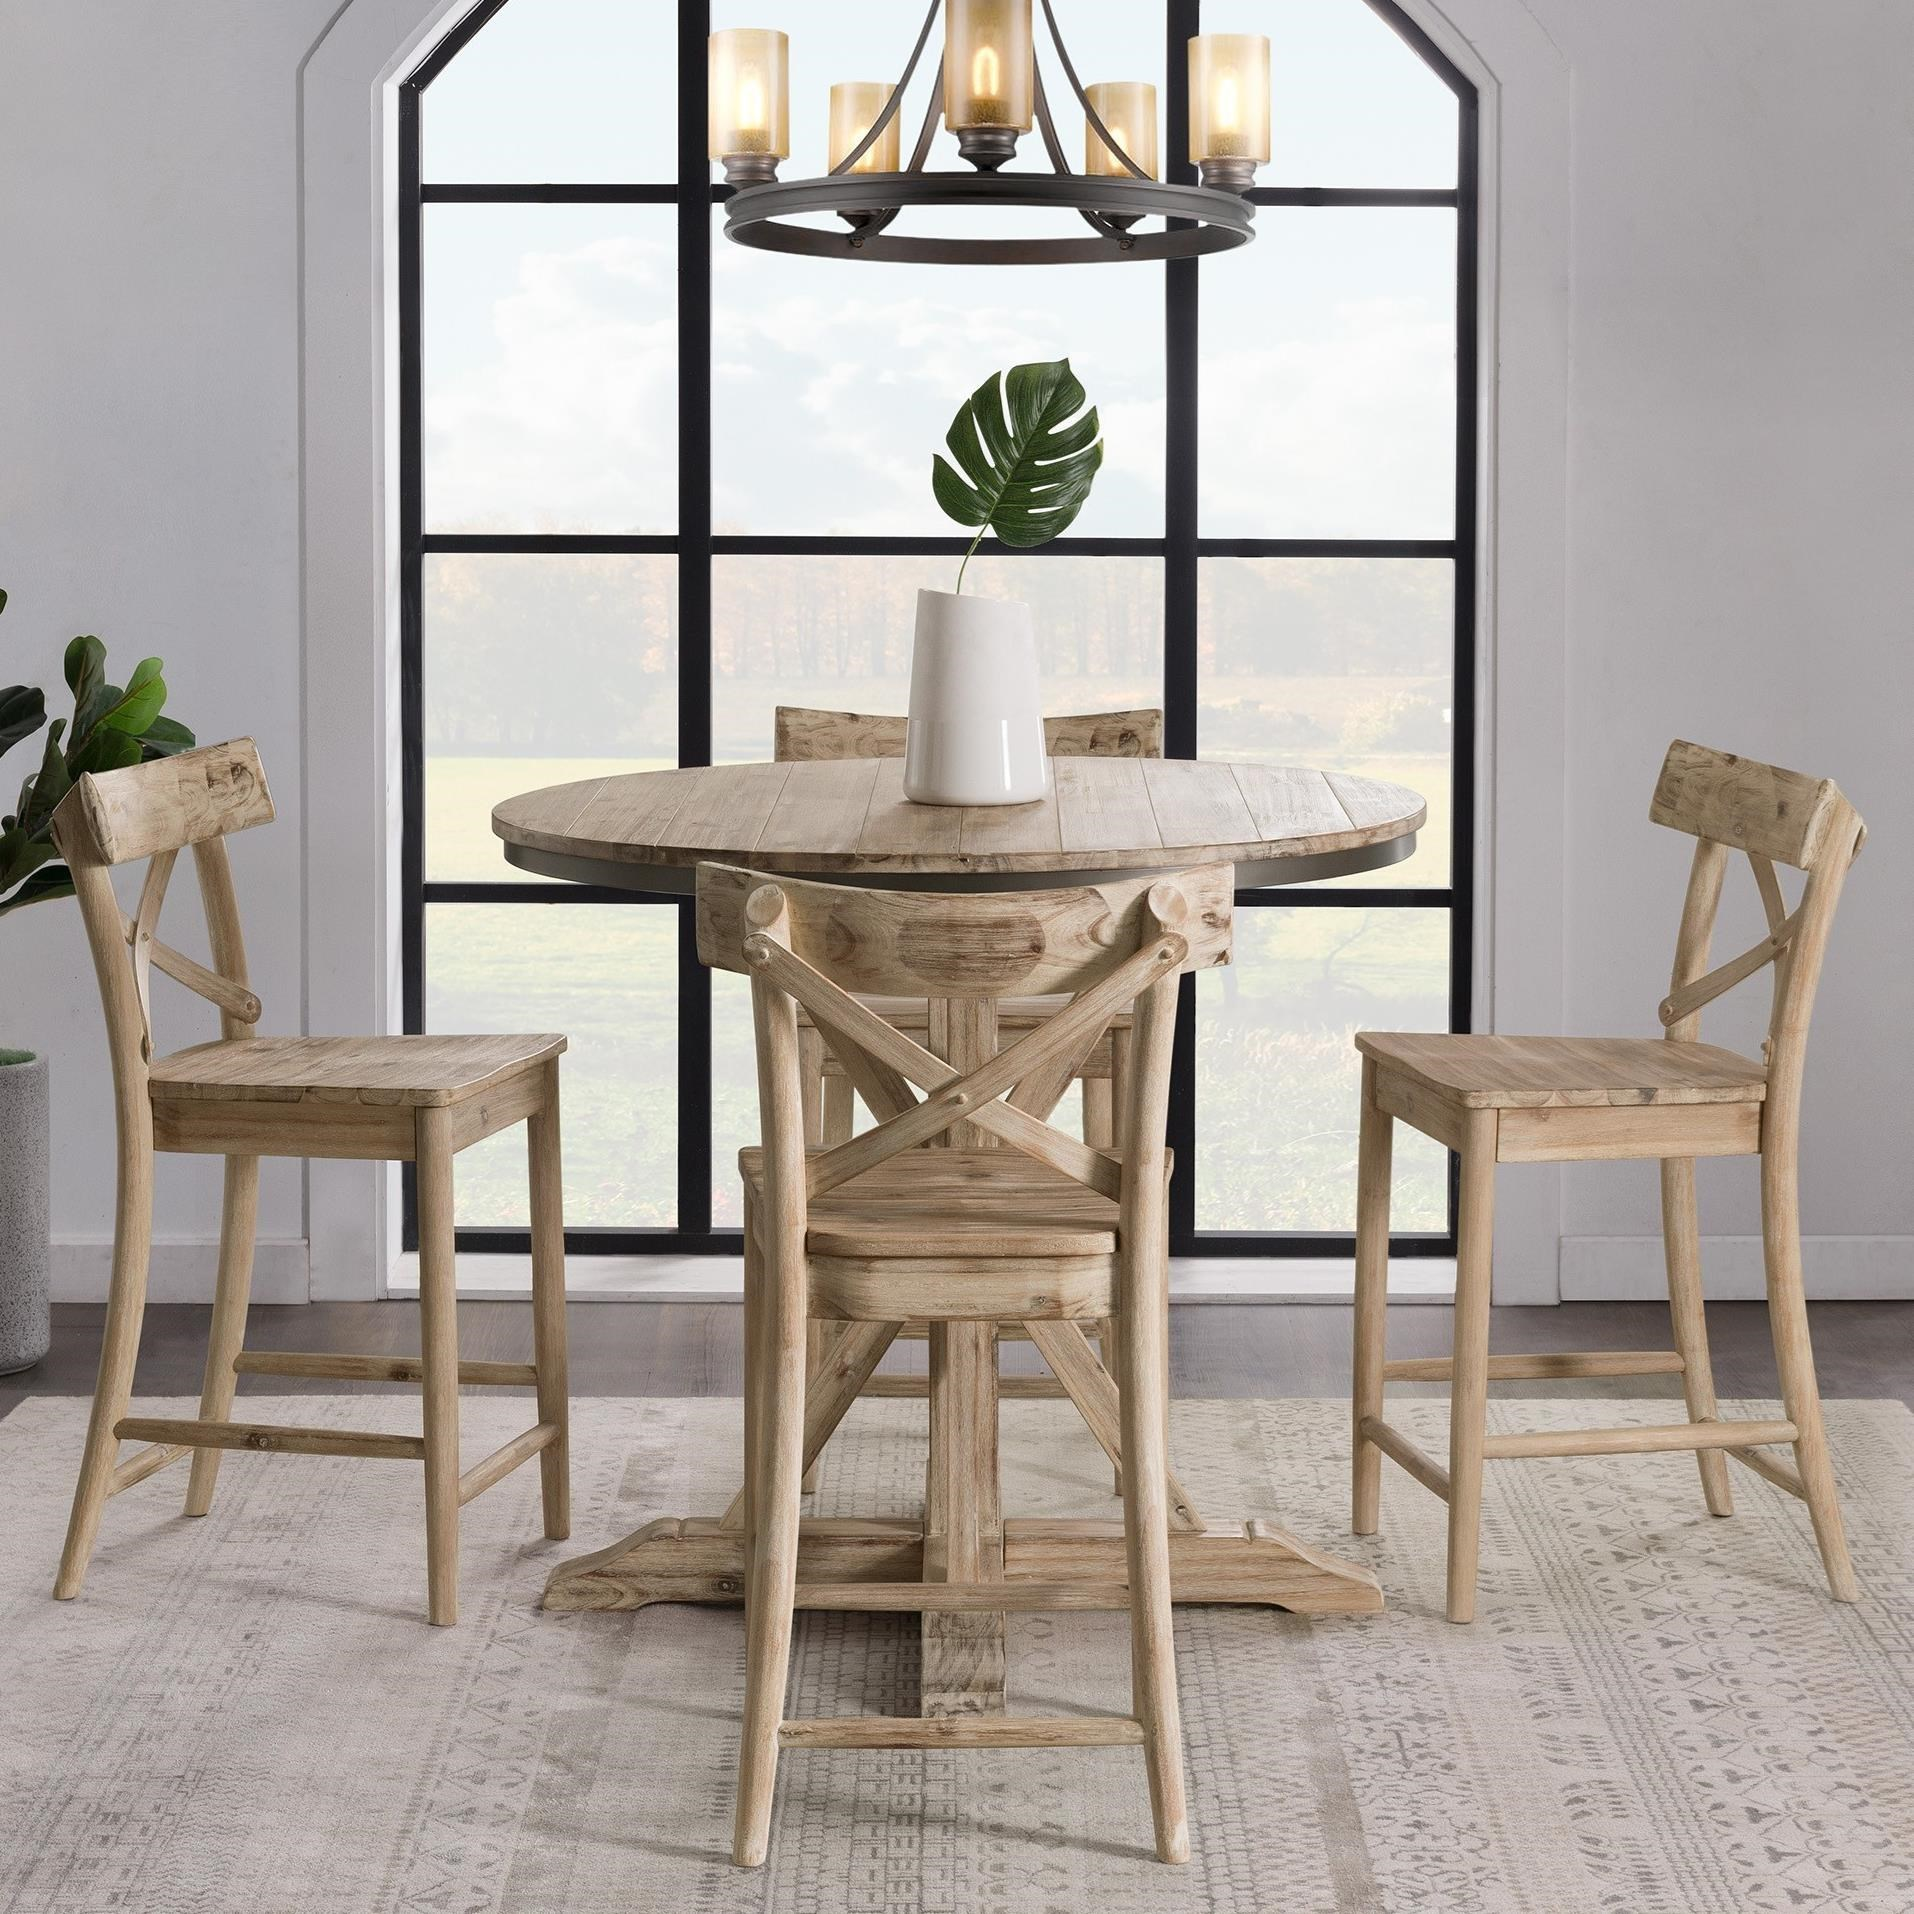 Picture of: Elements Callista Rustic Round Counter Height 5 Piece Dining Set Royal Furniture Pub Table And Stool Sets